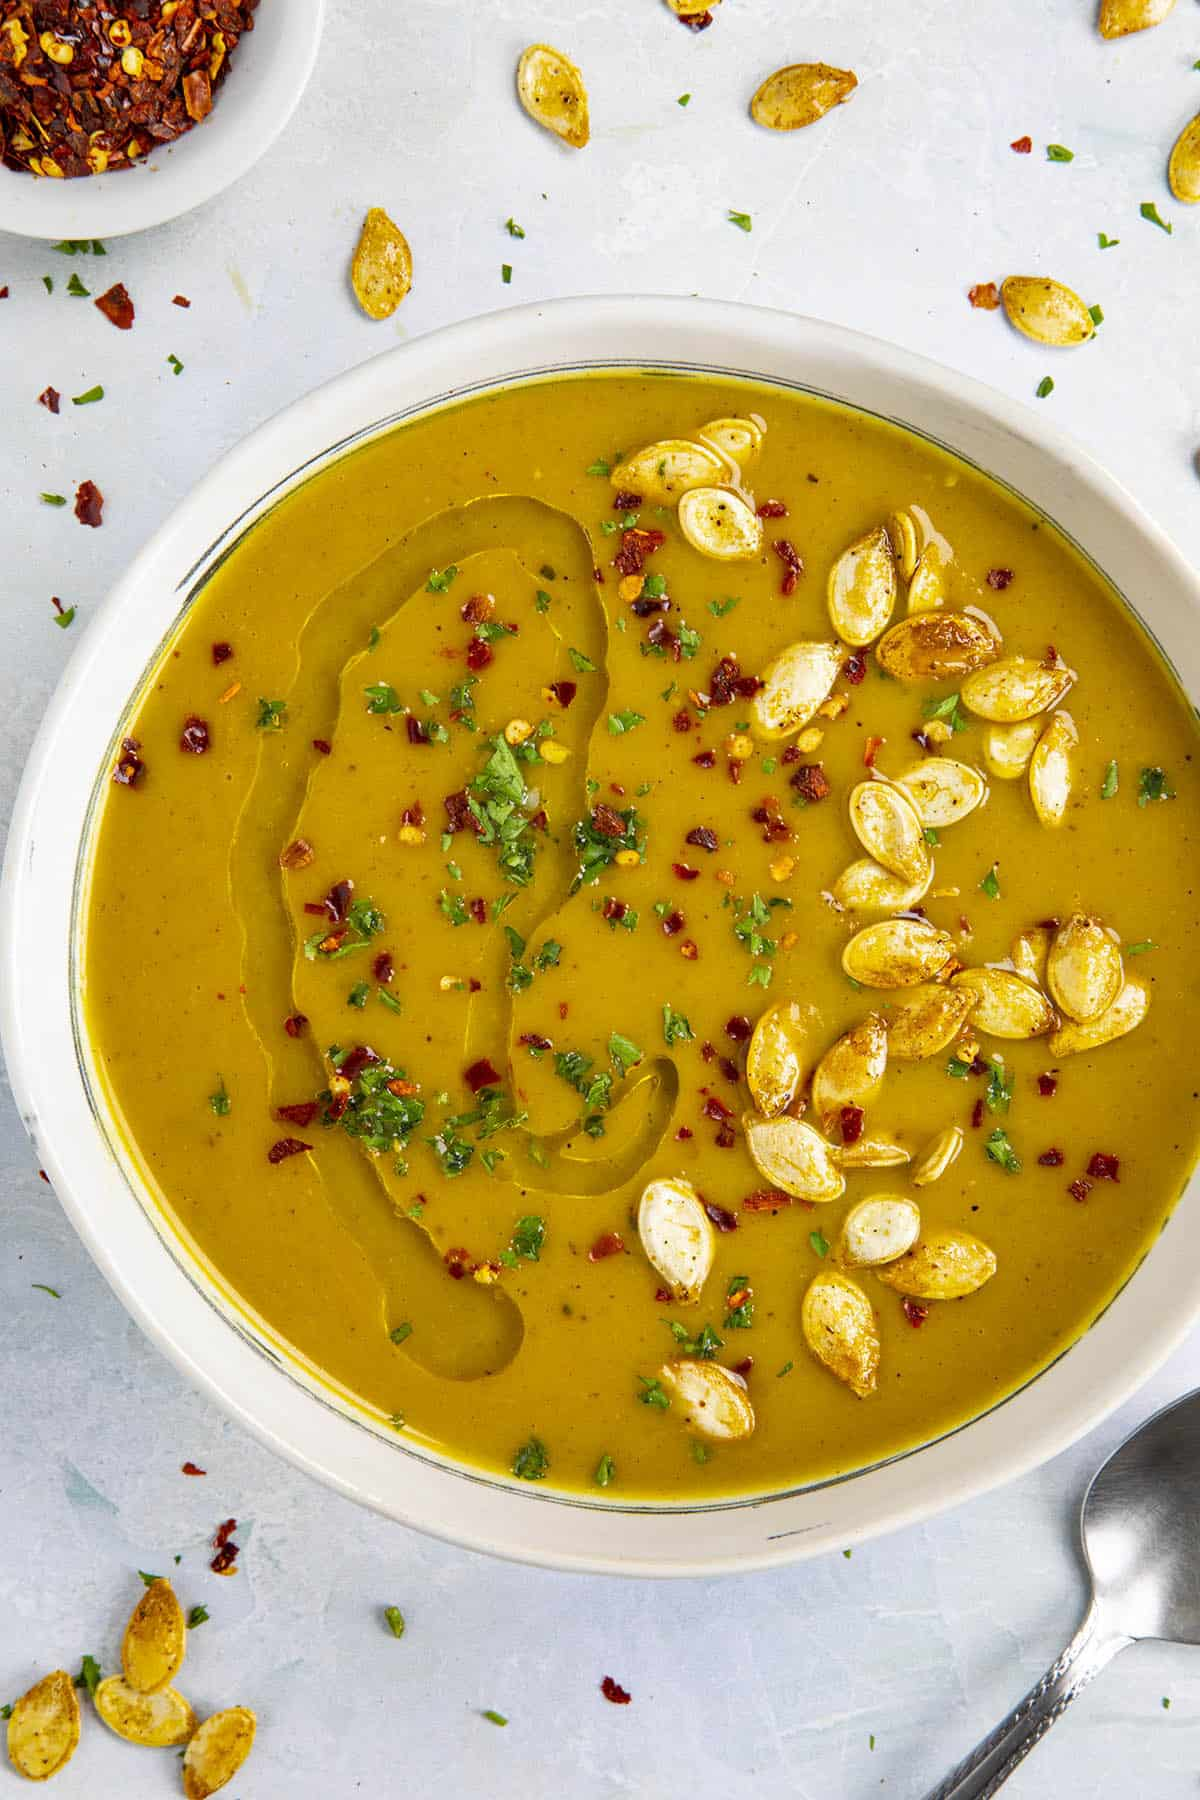 Spicy Pumpkin Soup in a bowl with pumpkin seeds and olive oil swirled over the top